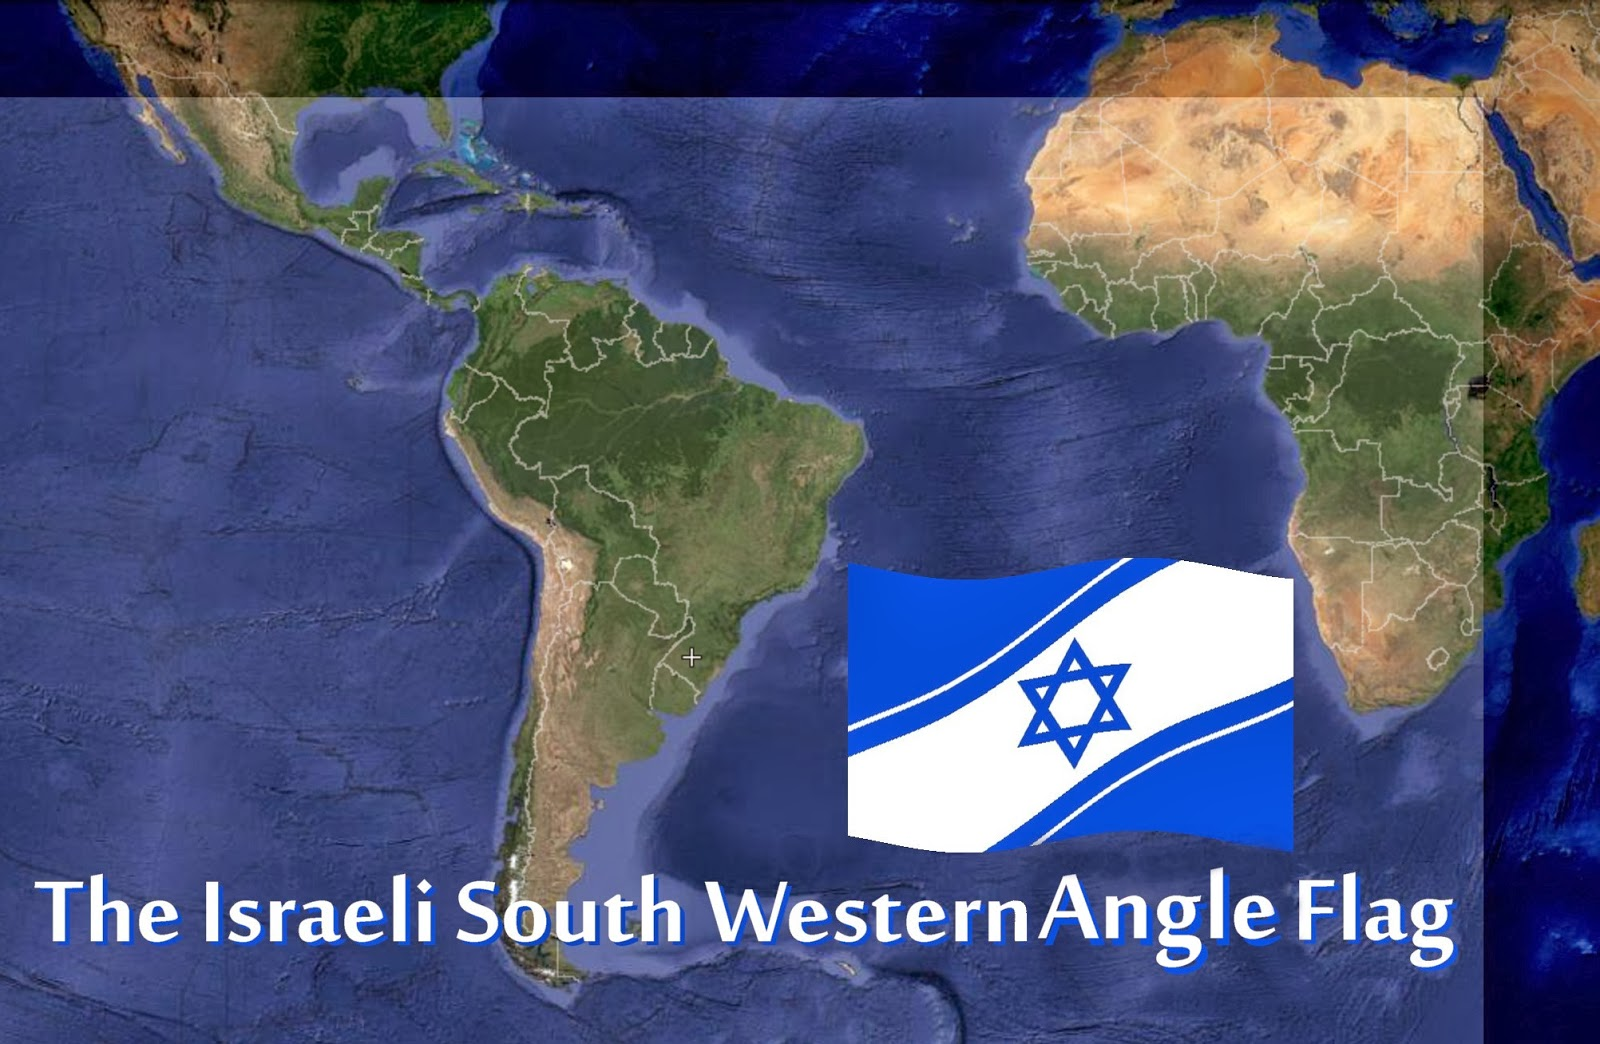 the major us cities in the south western angle of israel include miami tampa bay orlando and daytona